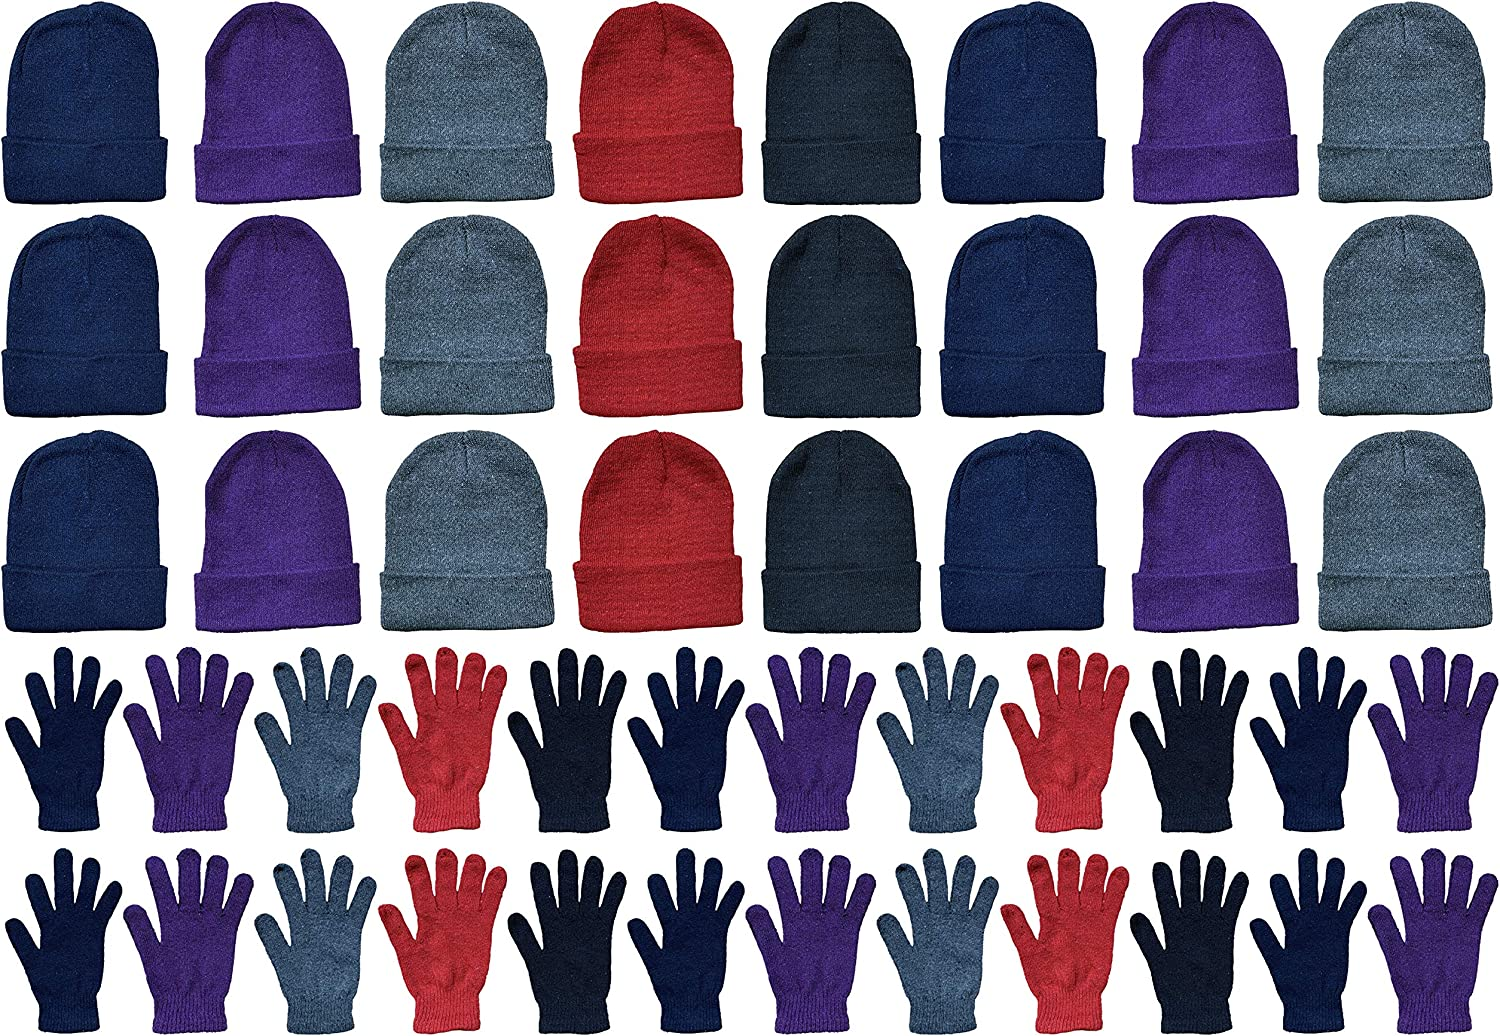 Yacht & Smith Mens Womens Hats and Gloves Set, Winter Bulk Wholesale Sets